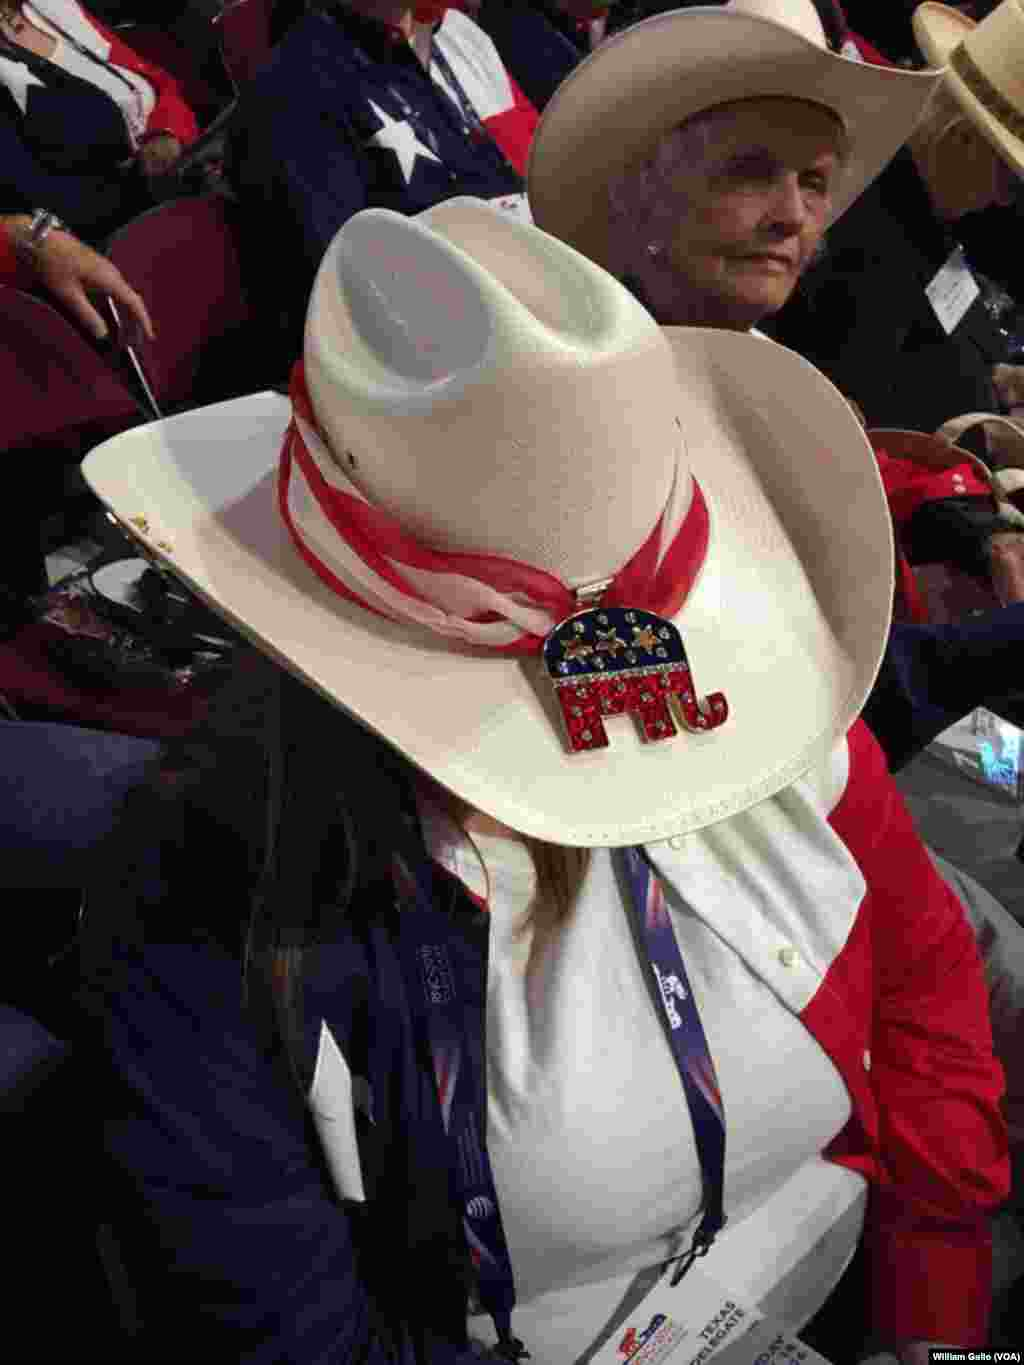 Texas delegates were well-dressed in state gear as they headed toward the Quicken Loans Arena for the Republican National Convention, in Cleveland, July 18, 2016.